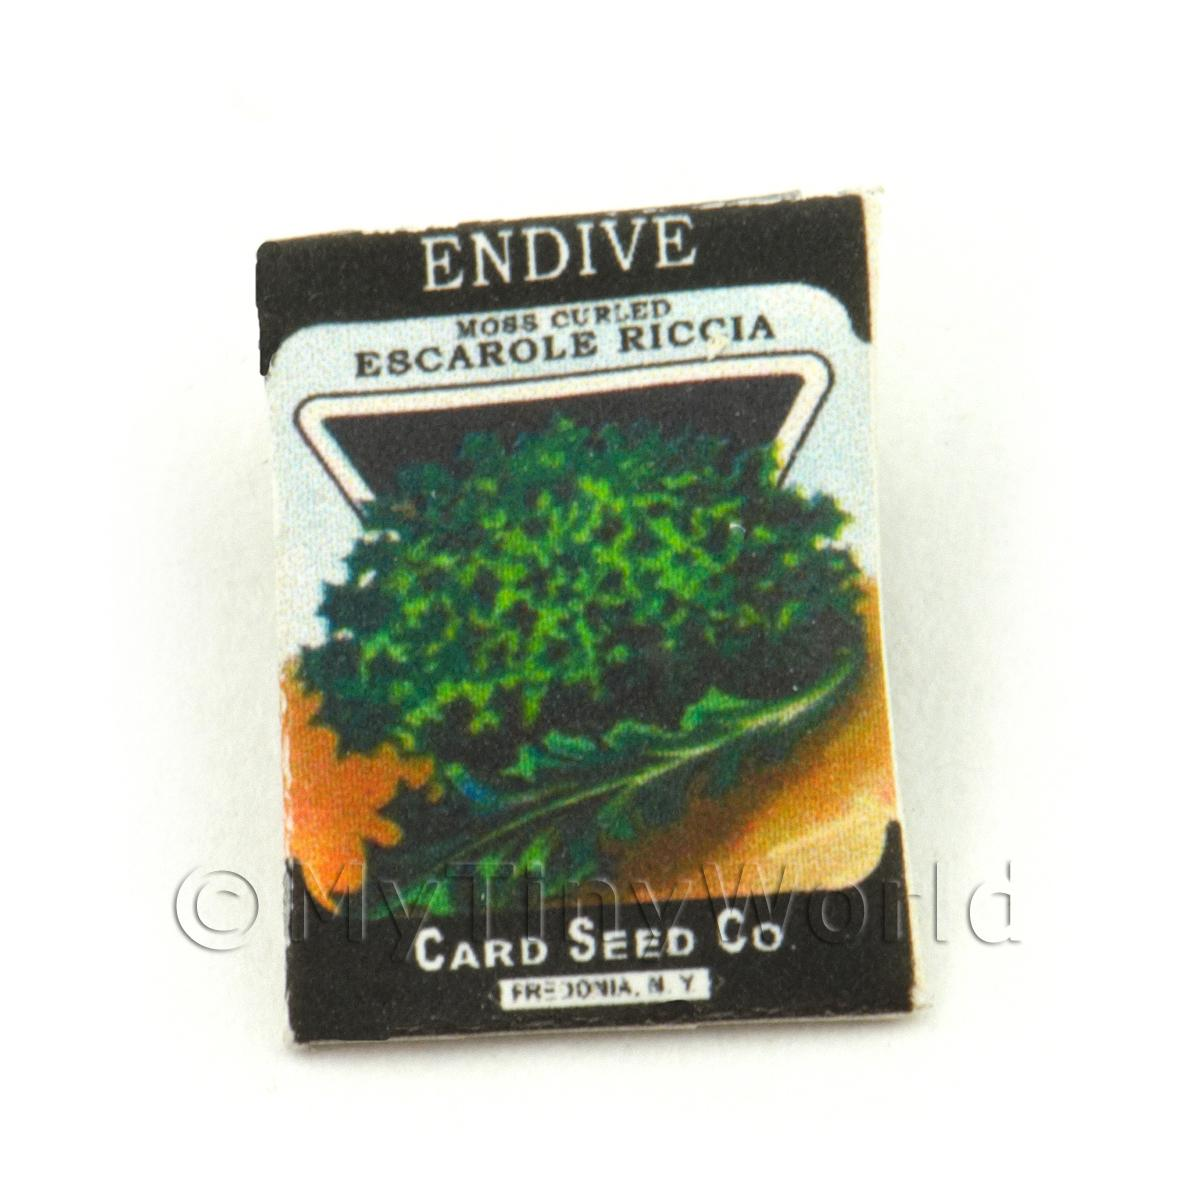 Dolls House Miniature Garden Endive Seed Packet